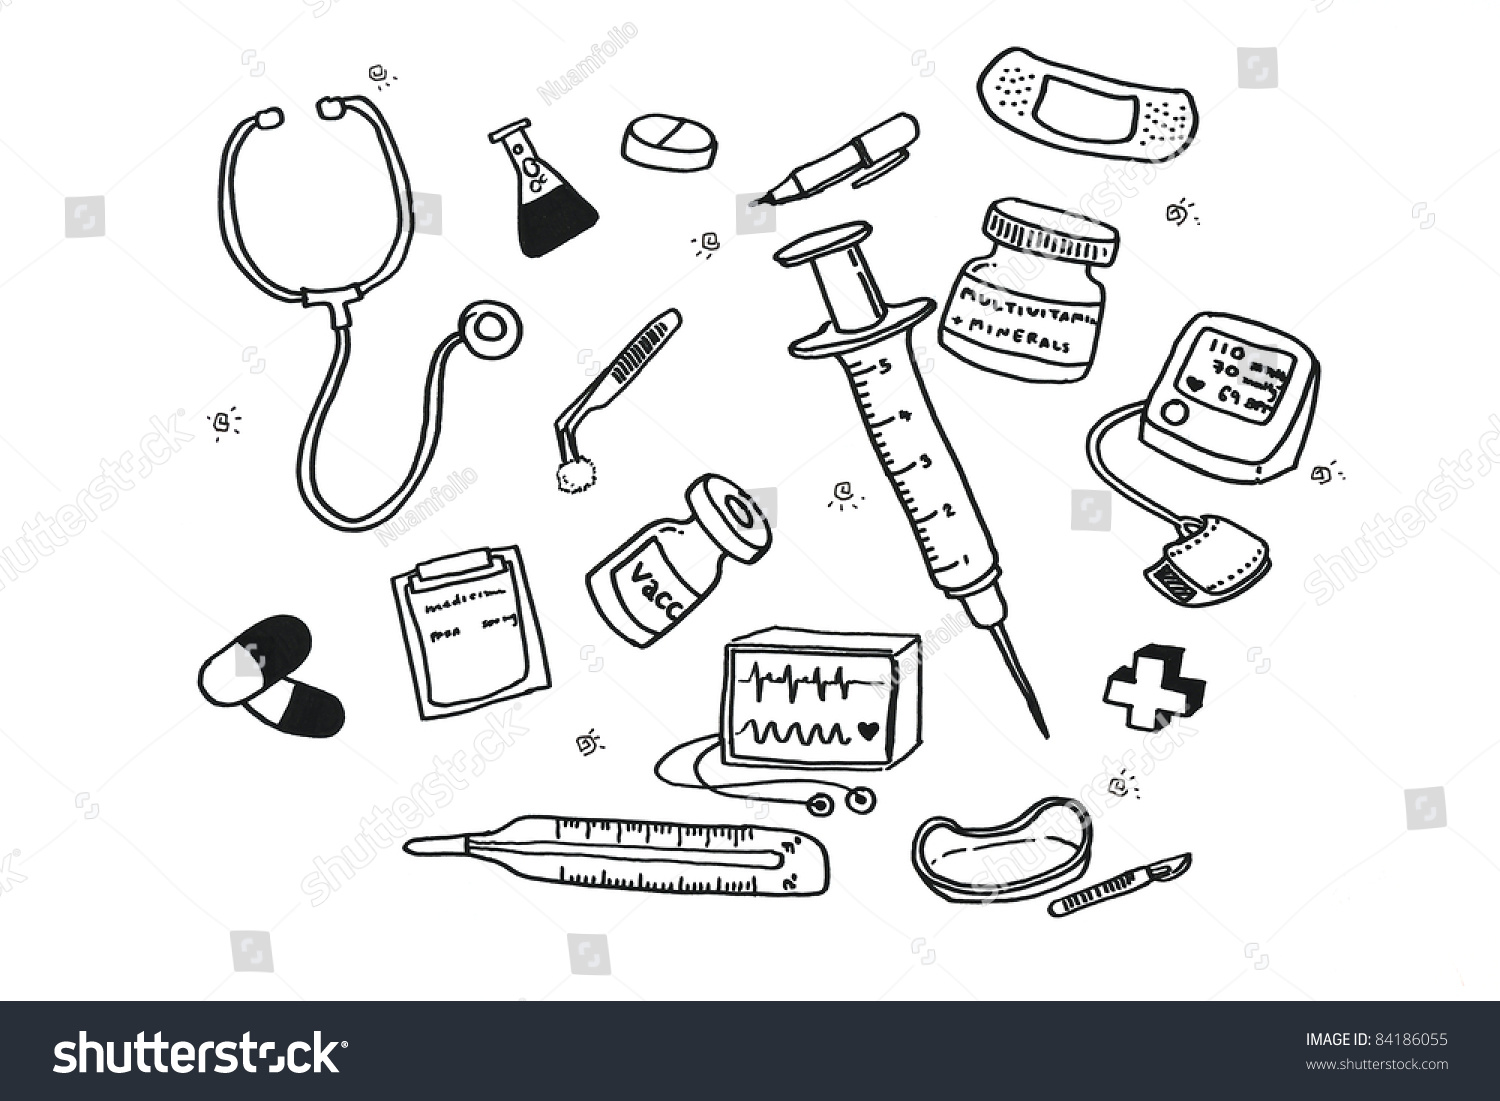 Freehand Draw Doctors Tools Stock Photo 84186055